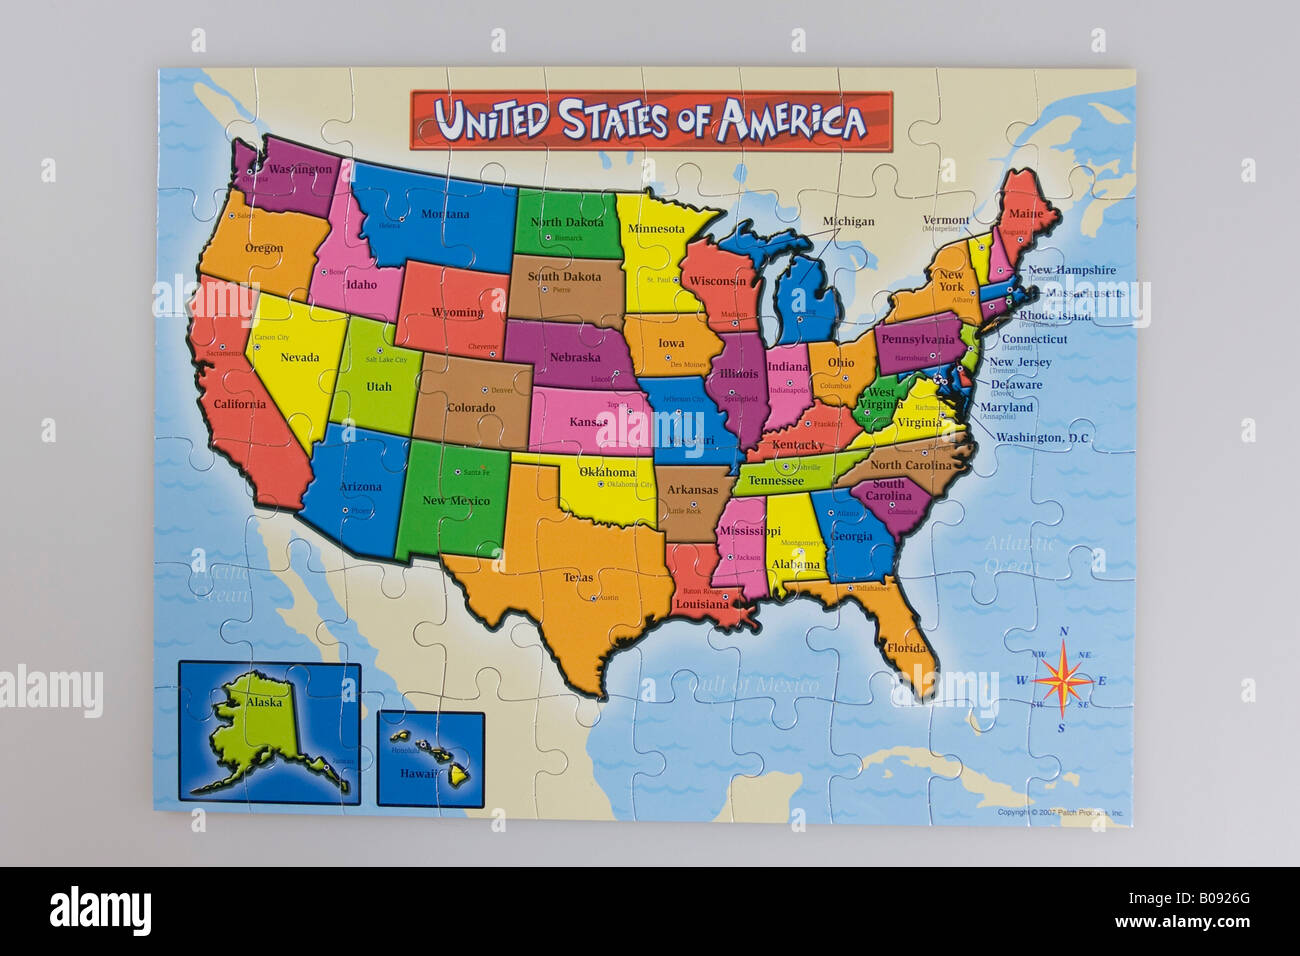 Puzzle Map Of The United States.Puzzle Map Of The United States Of America Usa Stock Photo